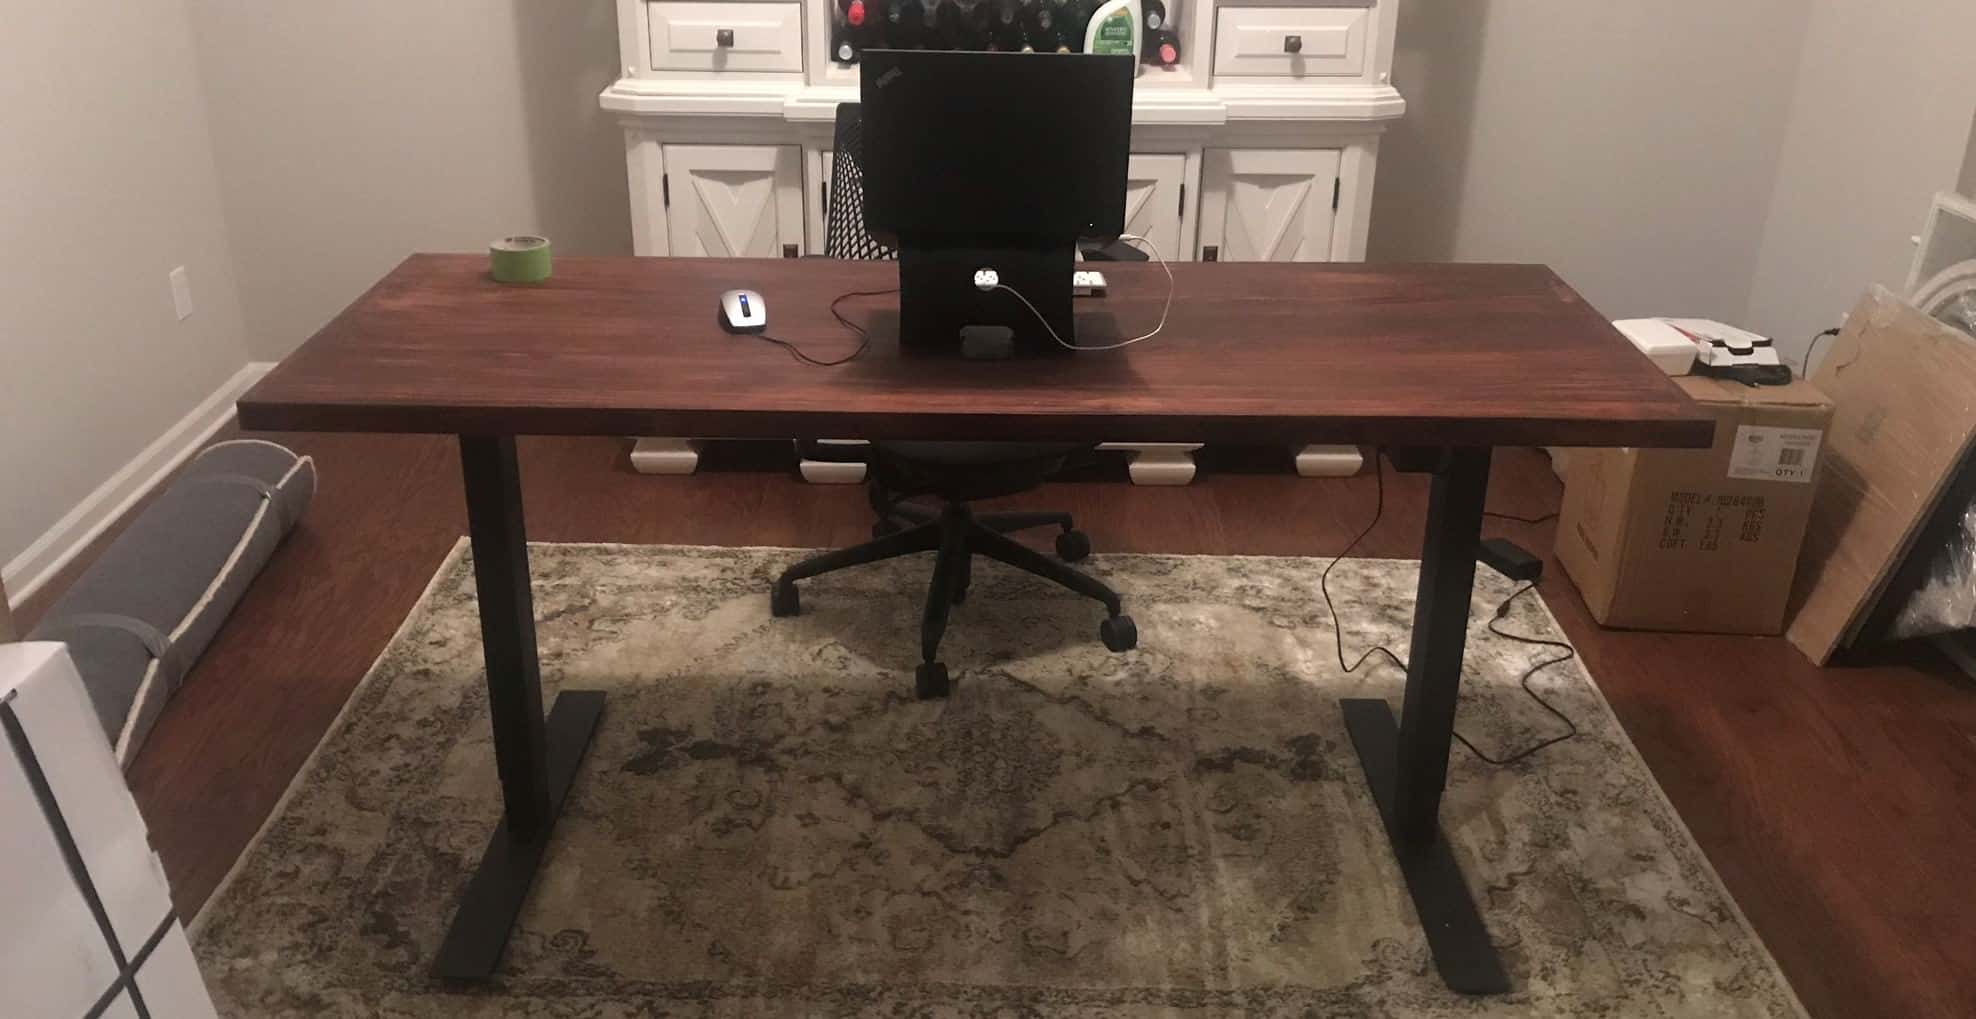 How To Build A DIY Adjustable Standing Desk Step By Step